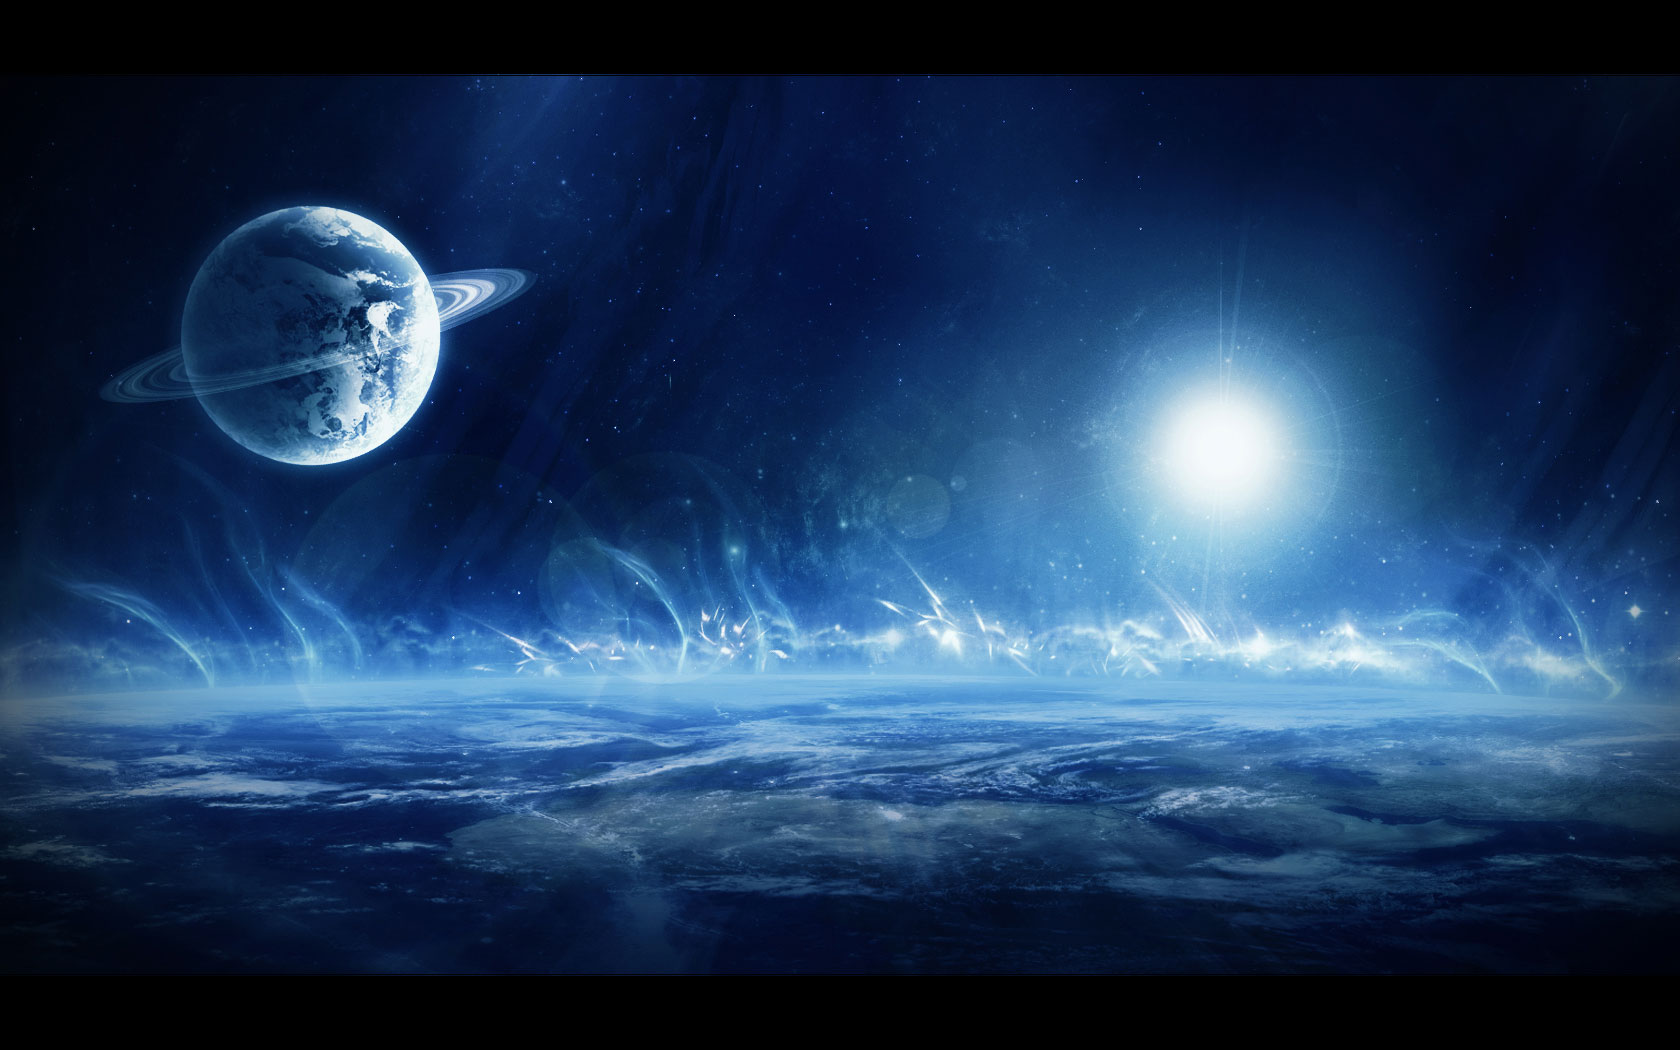 Hd Outer Space Wallpaper: HD Space Wallpaper Widescreen